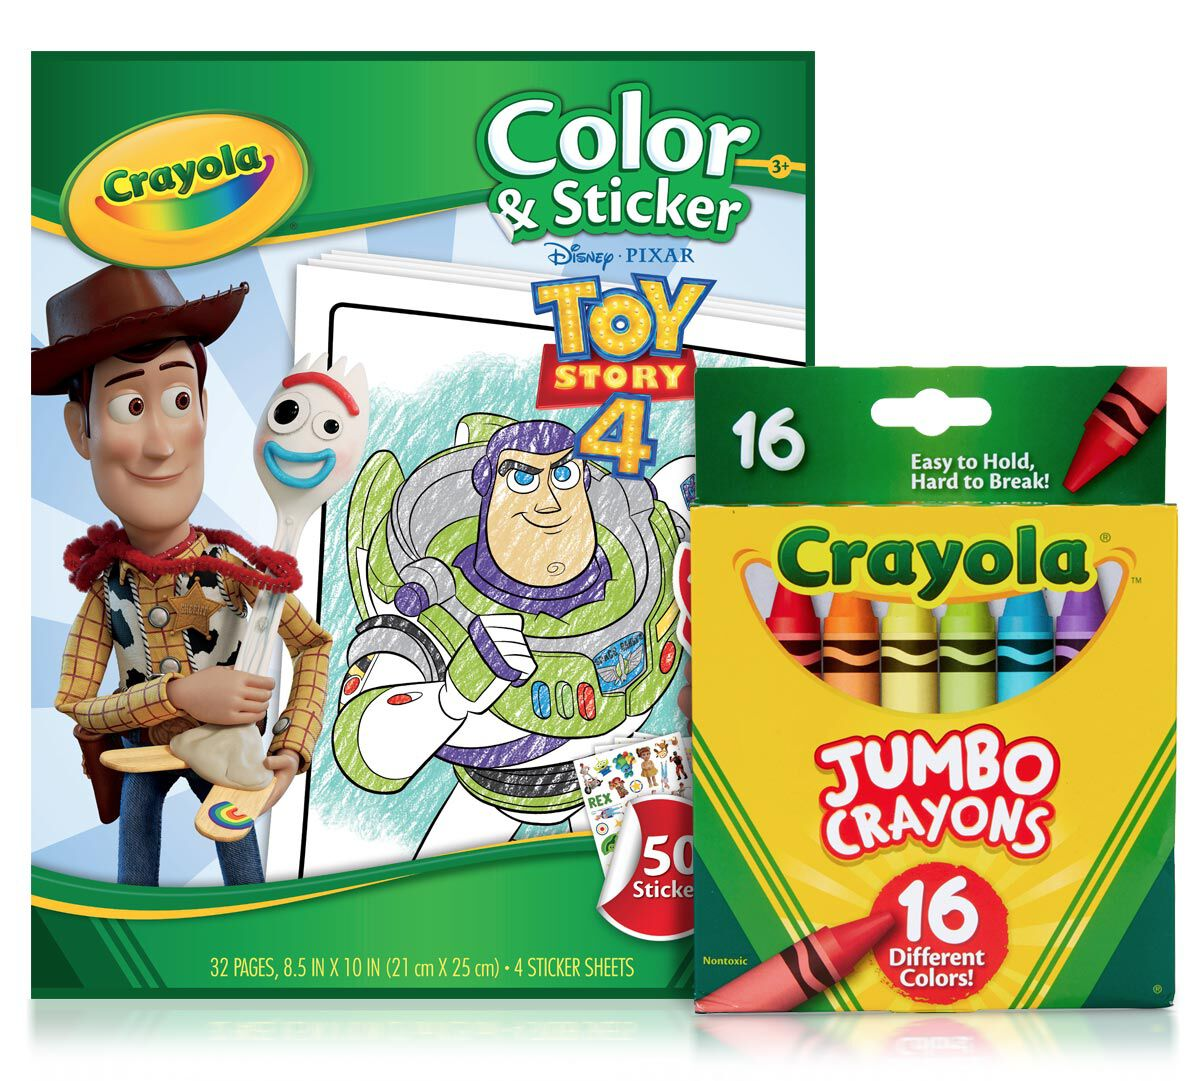 Toy Story 4 Color & Sticker Book with Jumbo Crayons